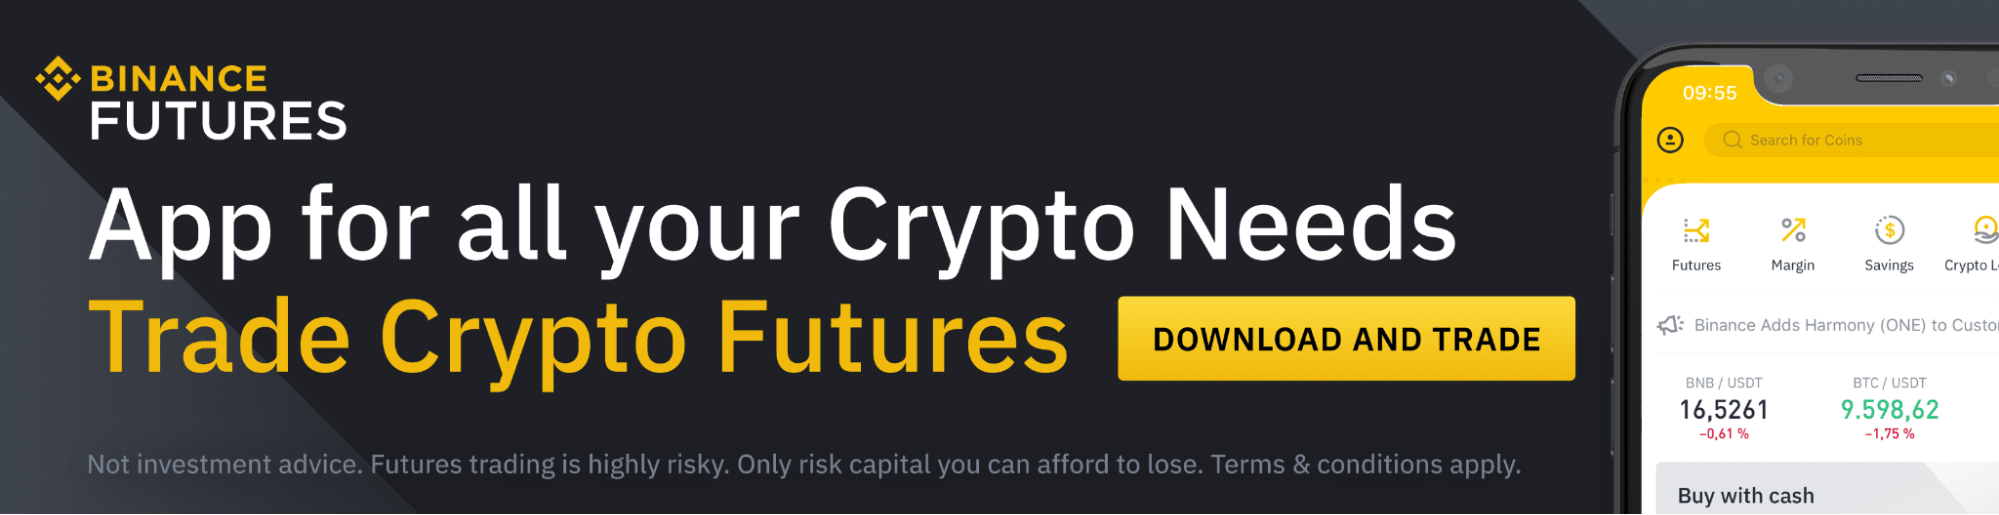 Riding The Trend With BTCDOM IndexCryptocurrency Trading Signals, Strategies & Templates   DexStrats